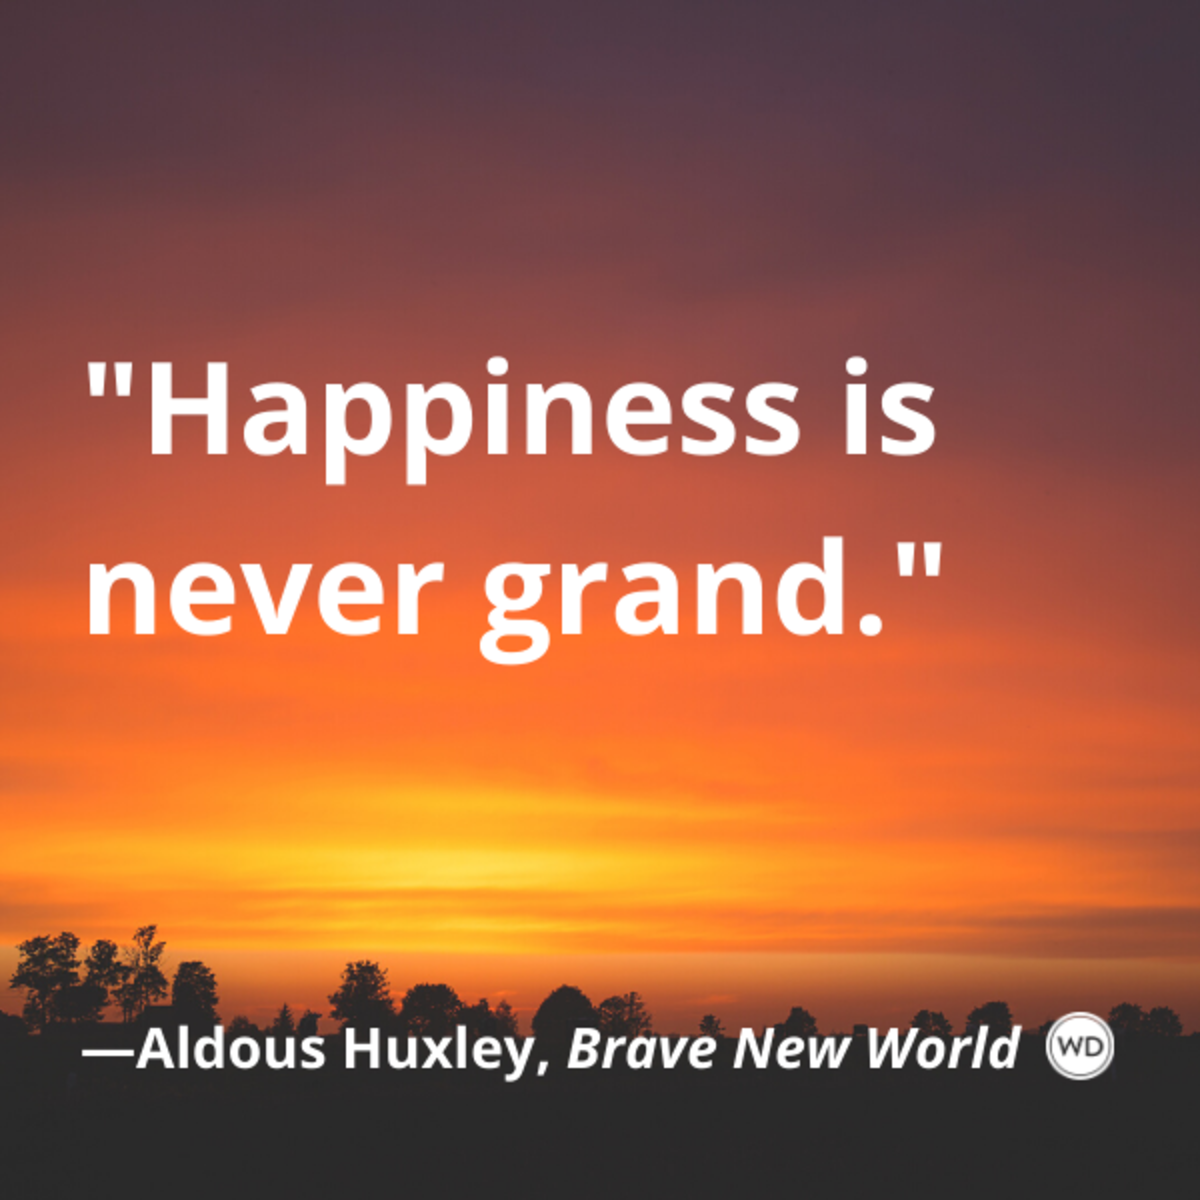 aldous_huxley_brave_new_world_quotes_happiness_is_never_grand